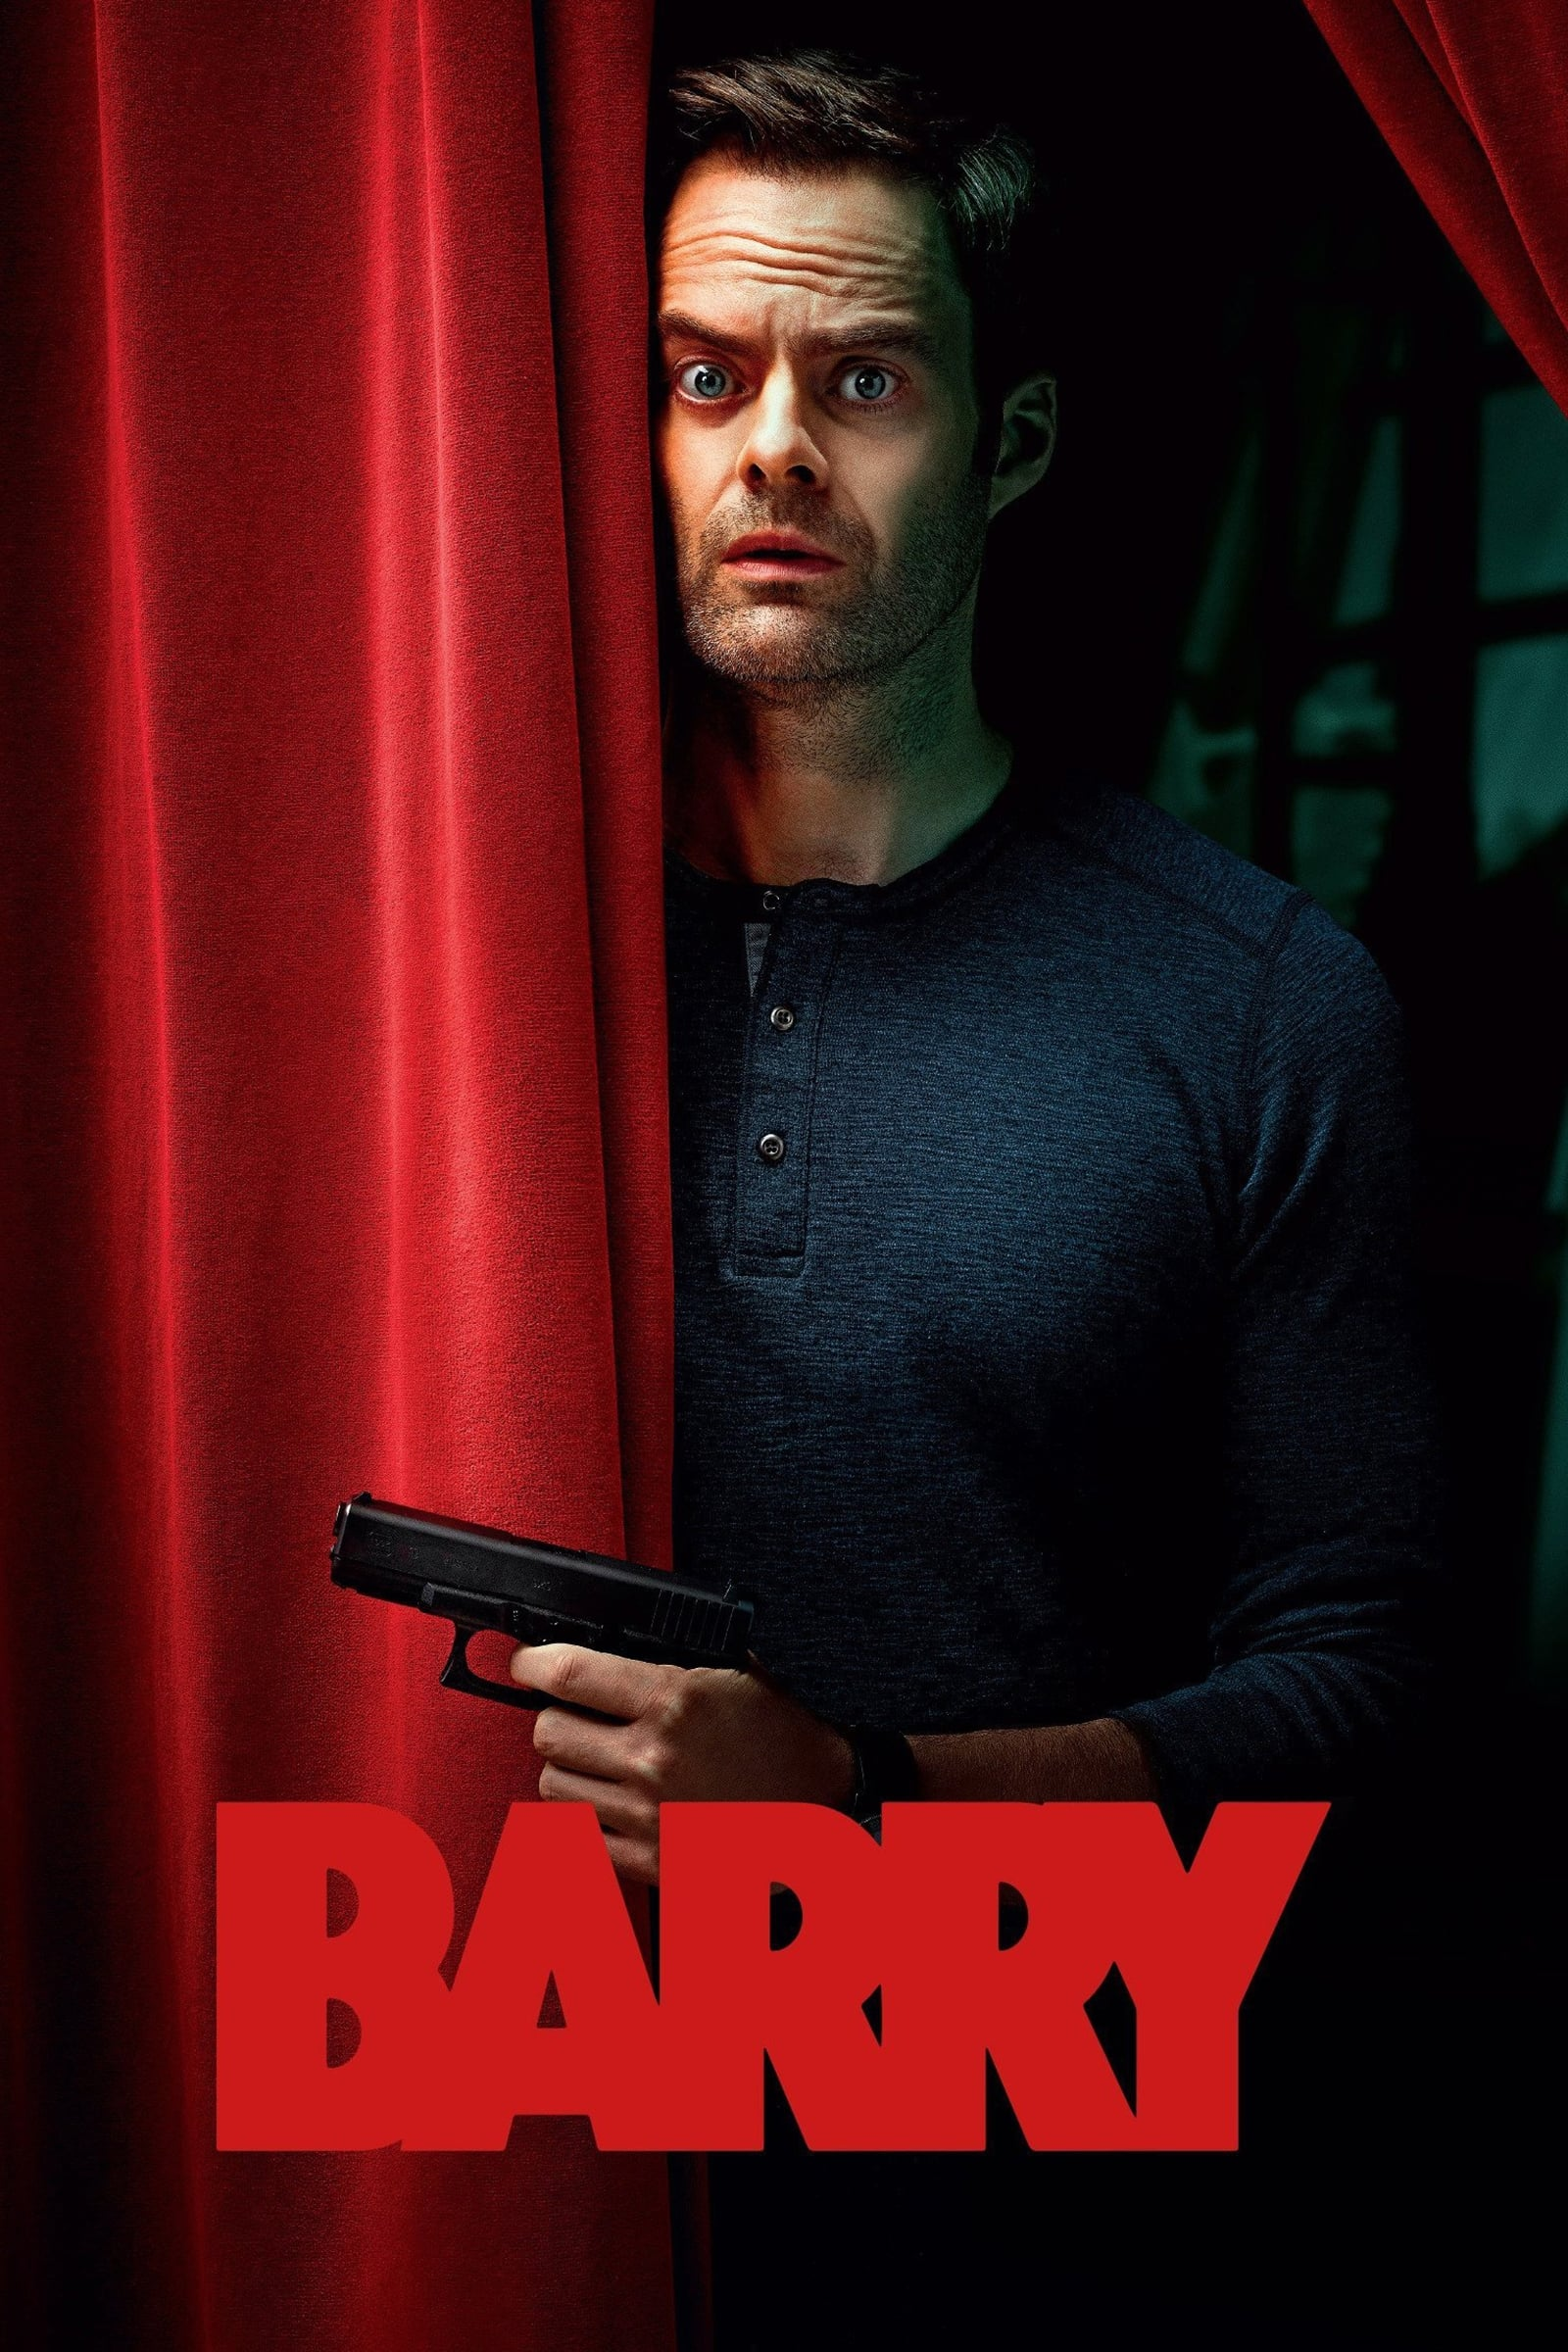 Barry 2ª Temporada (2019) Torrent - WEB-DL 720p e 1080p Dublado / Dual Áudio e Legendado Download